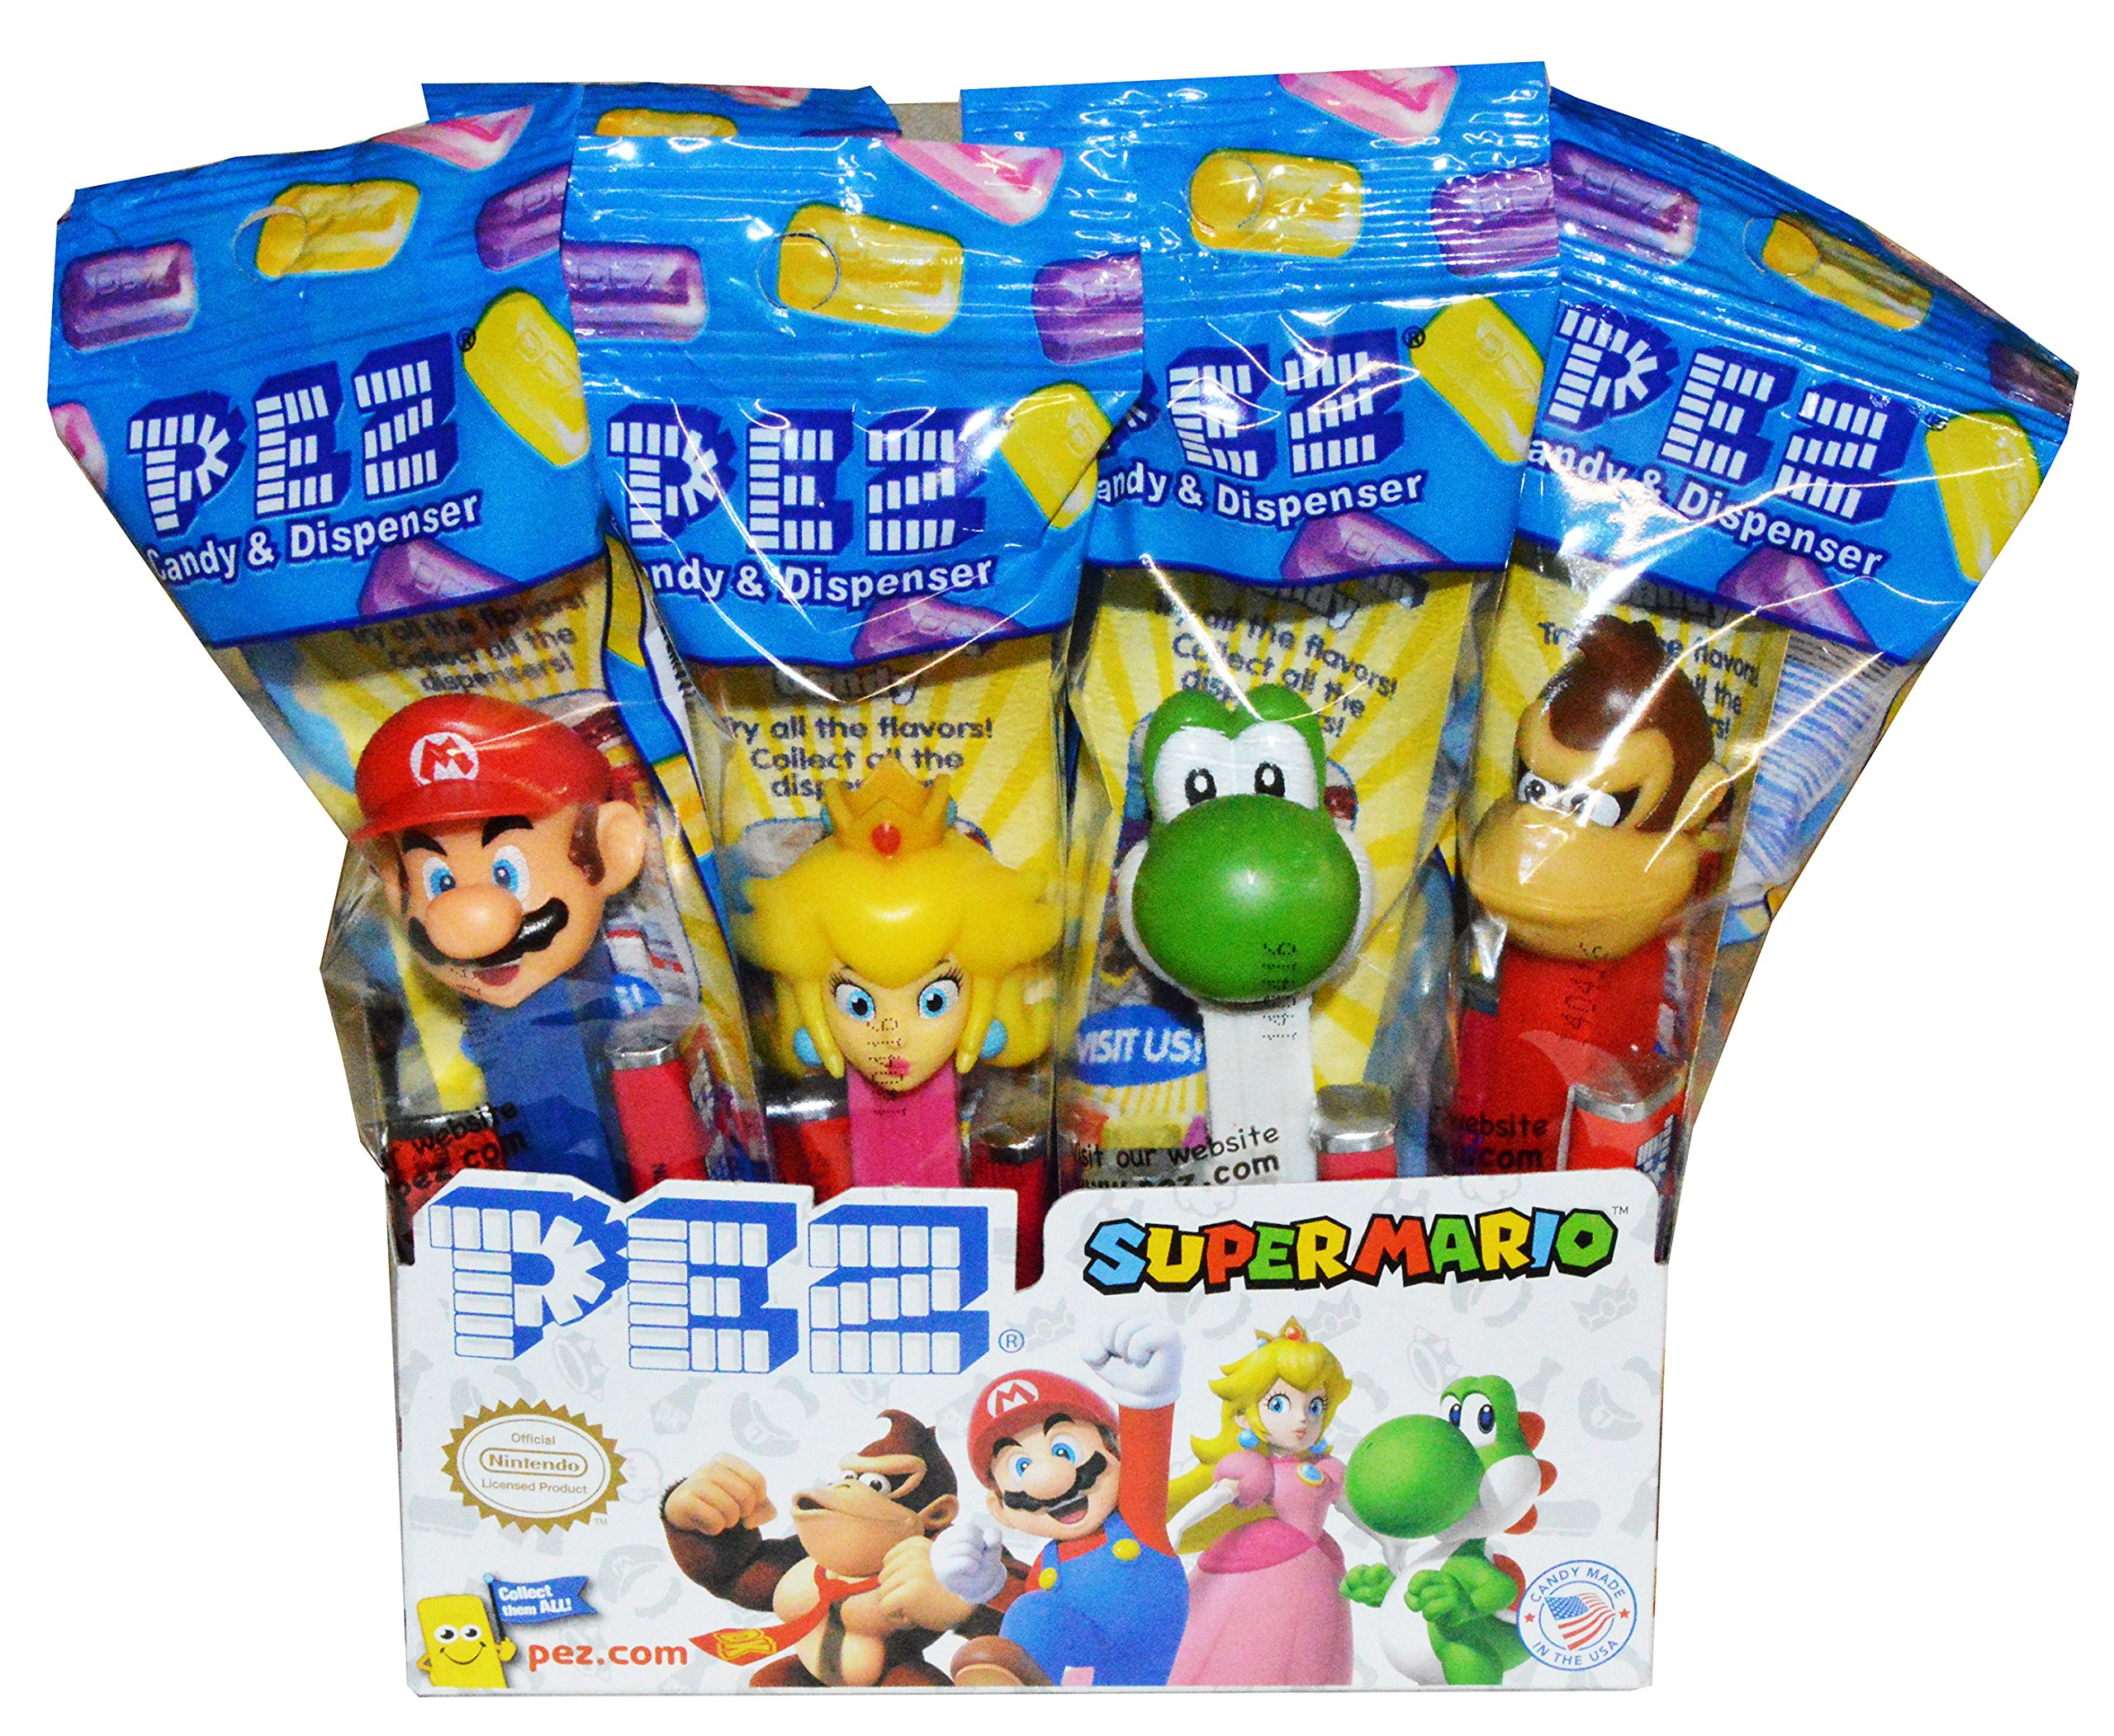 Pez Nintendo Super Mario Dispensers (12 Pack) by PEZ Candy (Image #1)